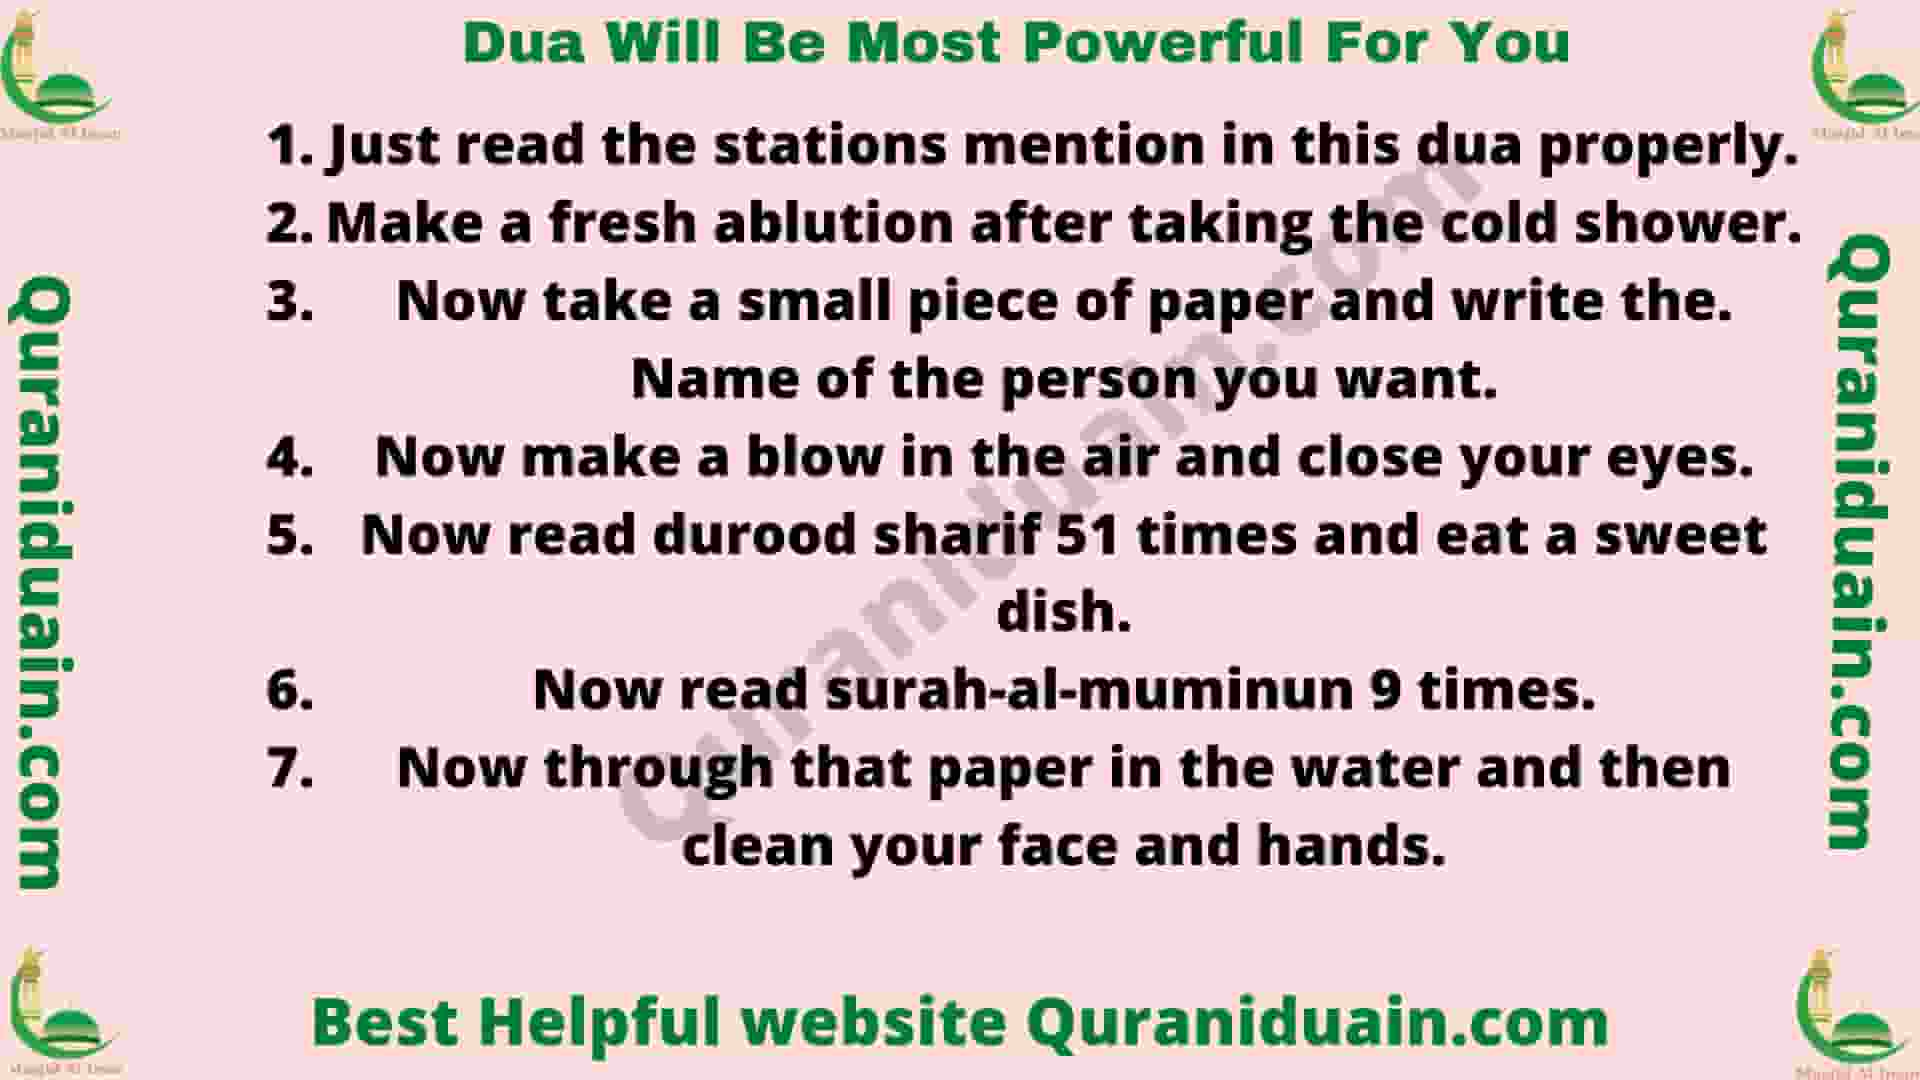 Dua Will Be Most Powerful For You